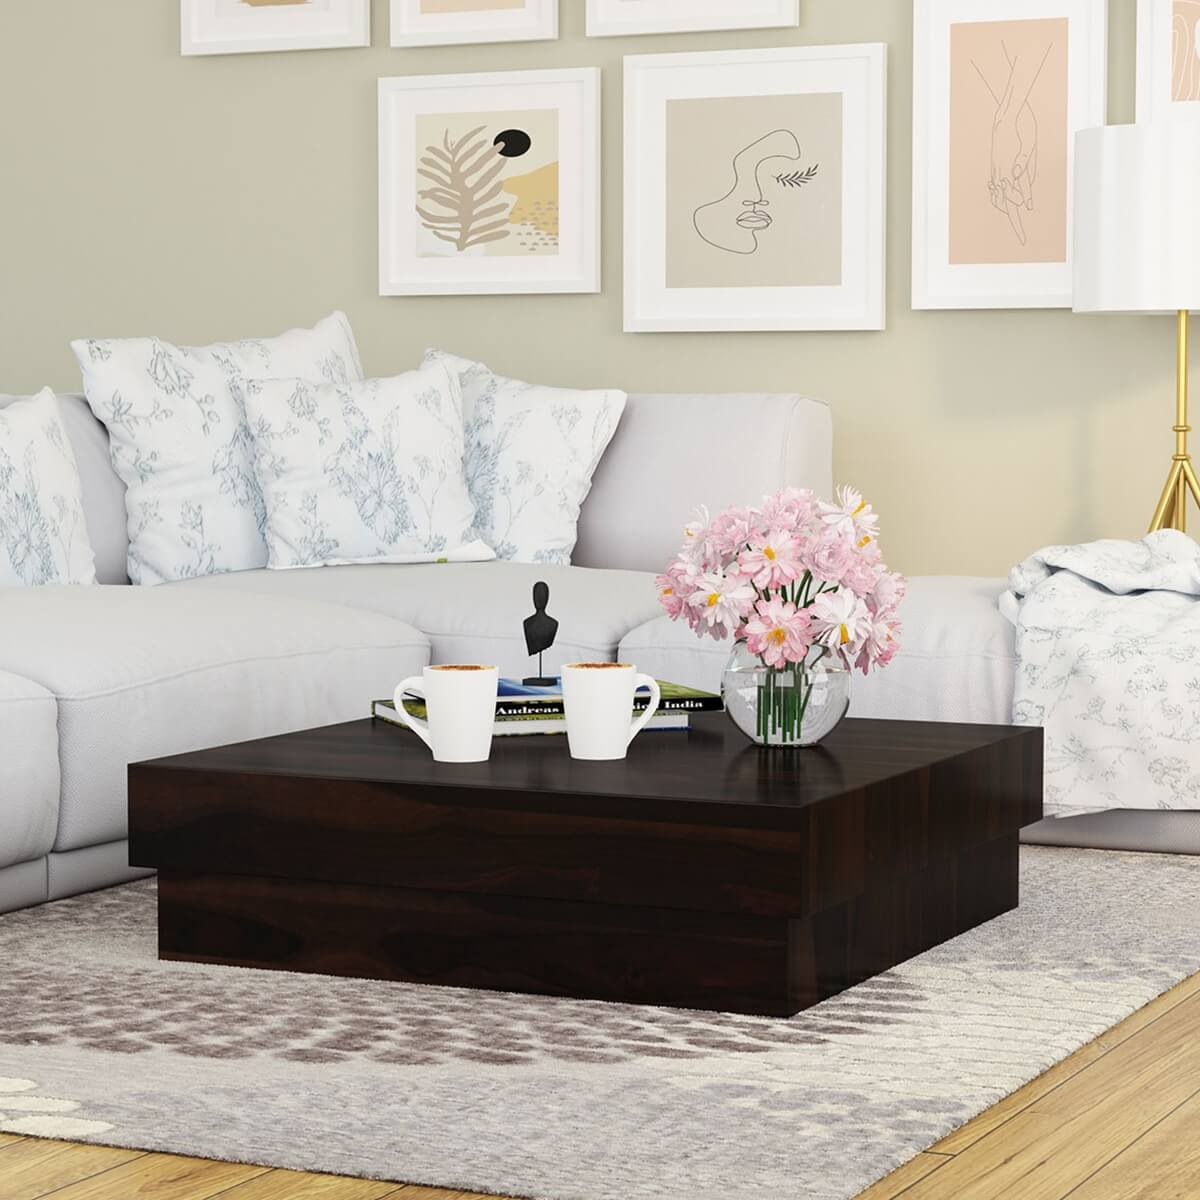 Solid Wood Square Contemporary Platform Unique Coffee Table